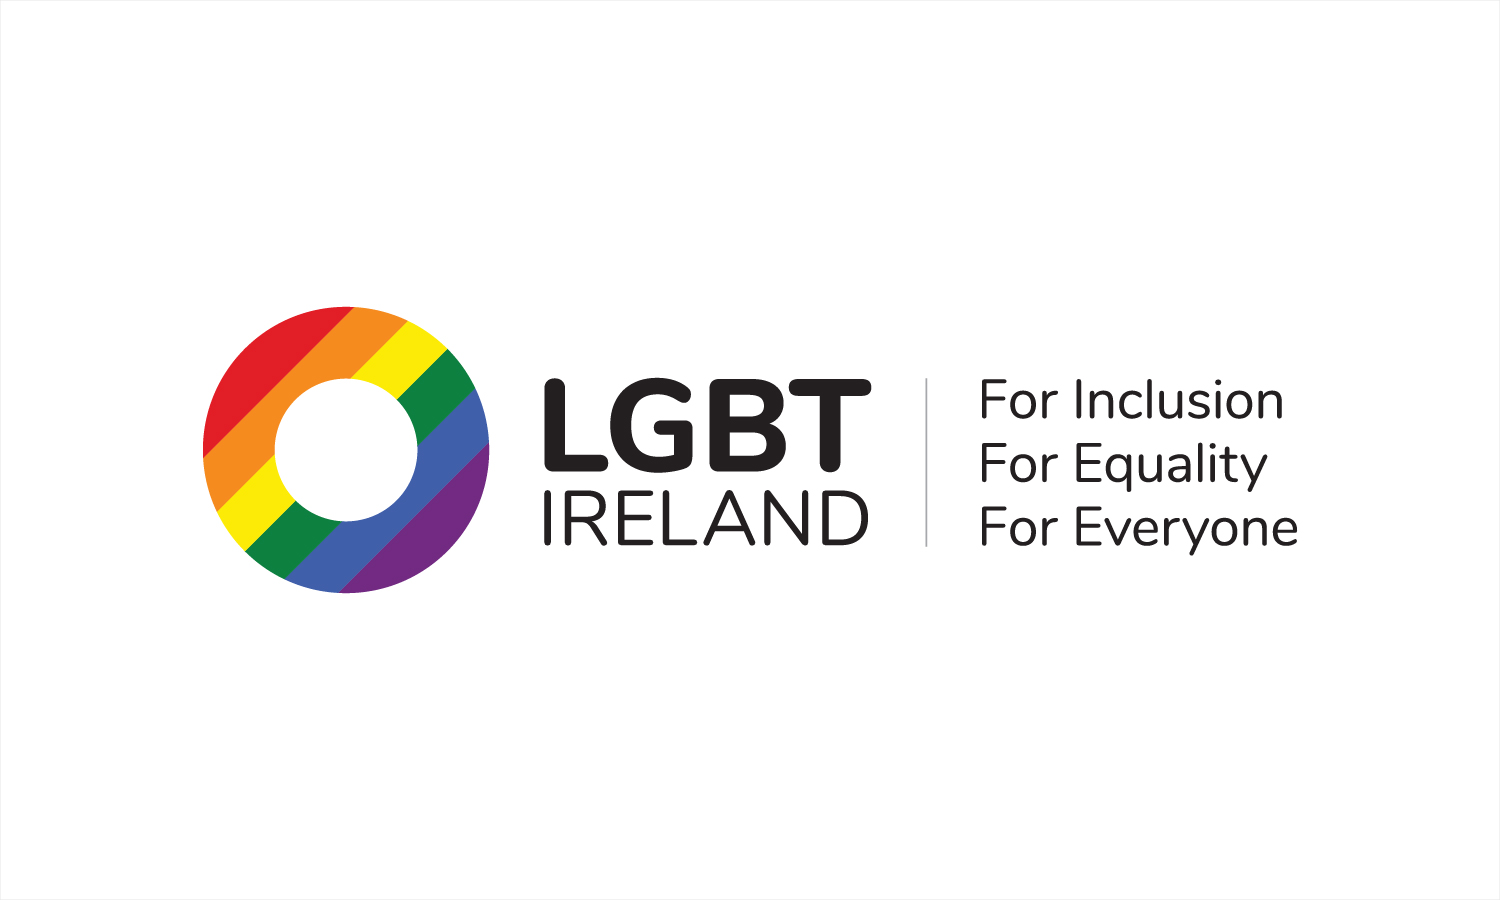 Cover image: LGBT Ireland